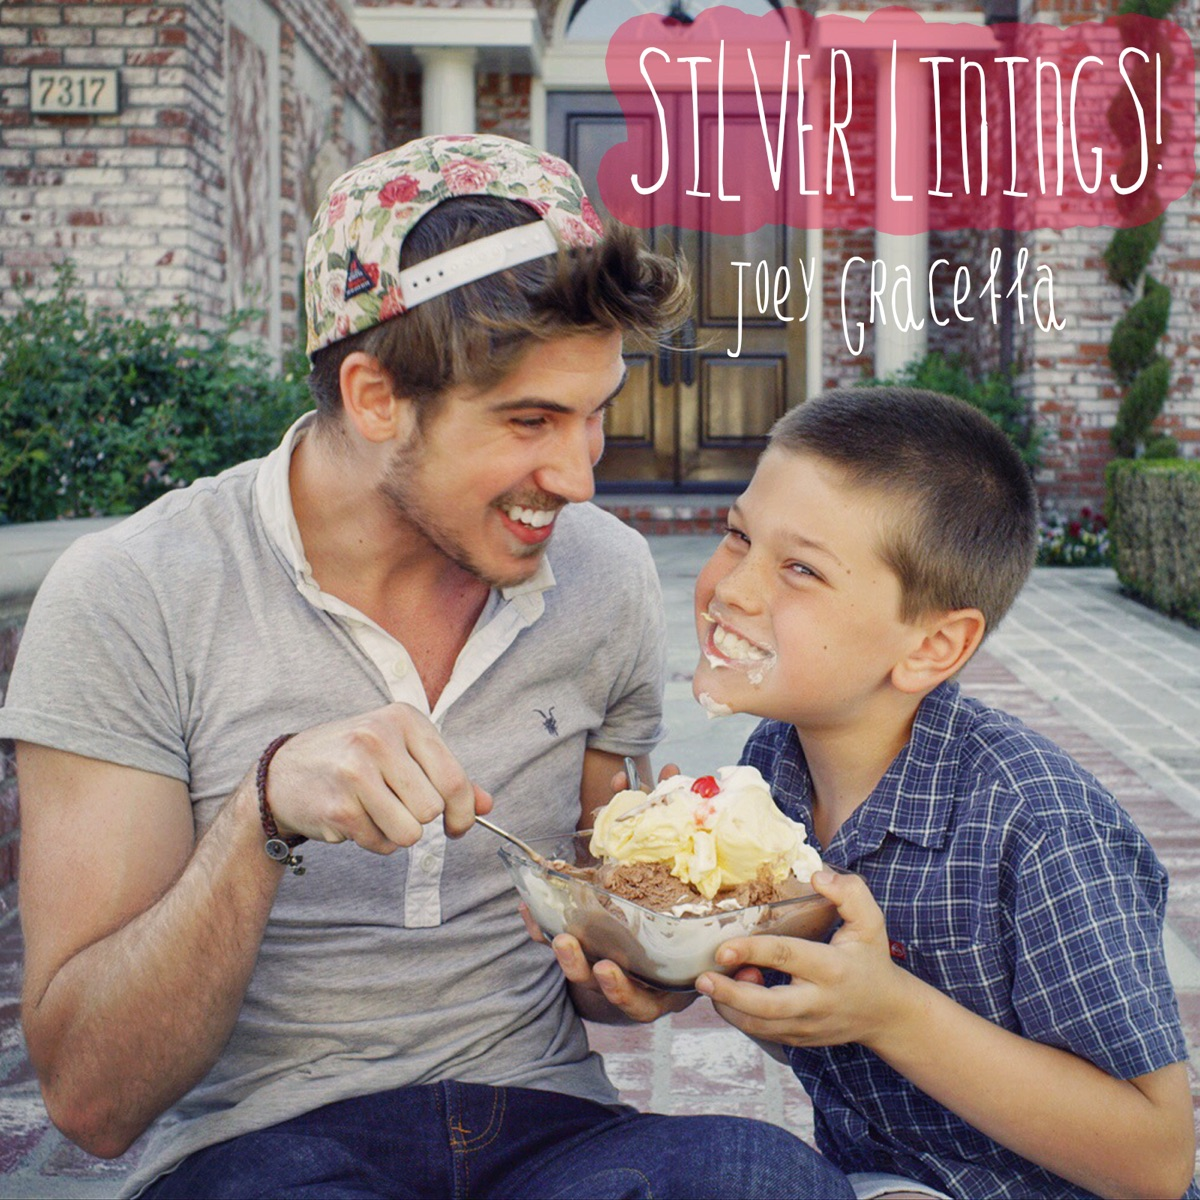 Silver Lining - Single Album Cover by Joey Graceffa